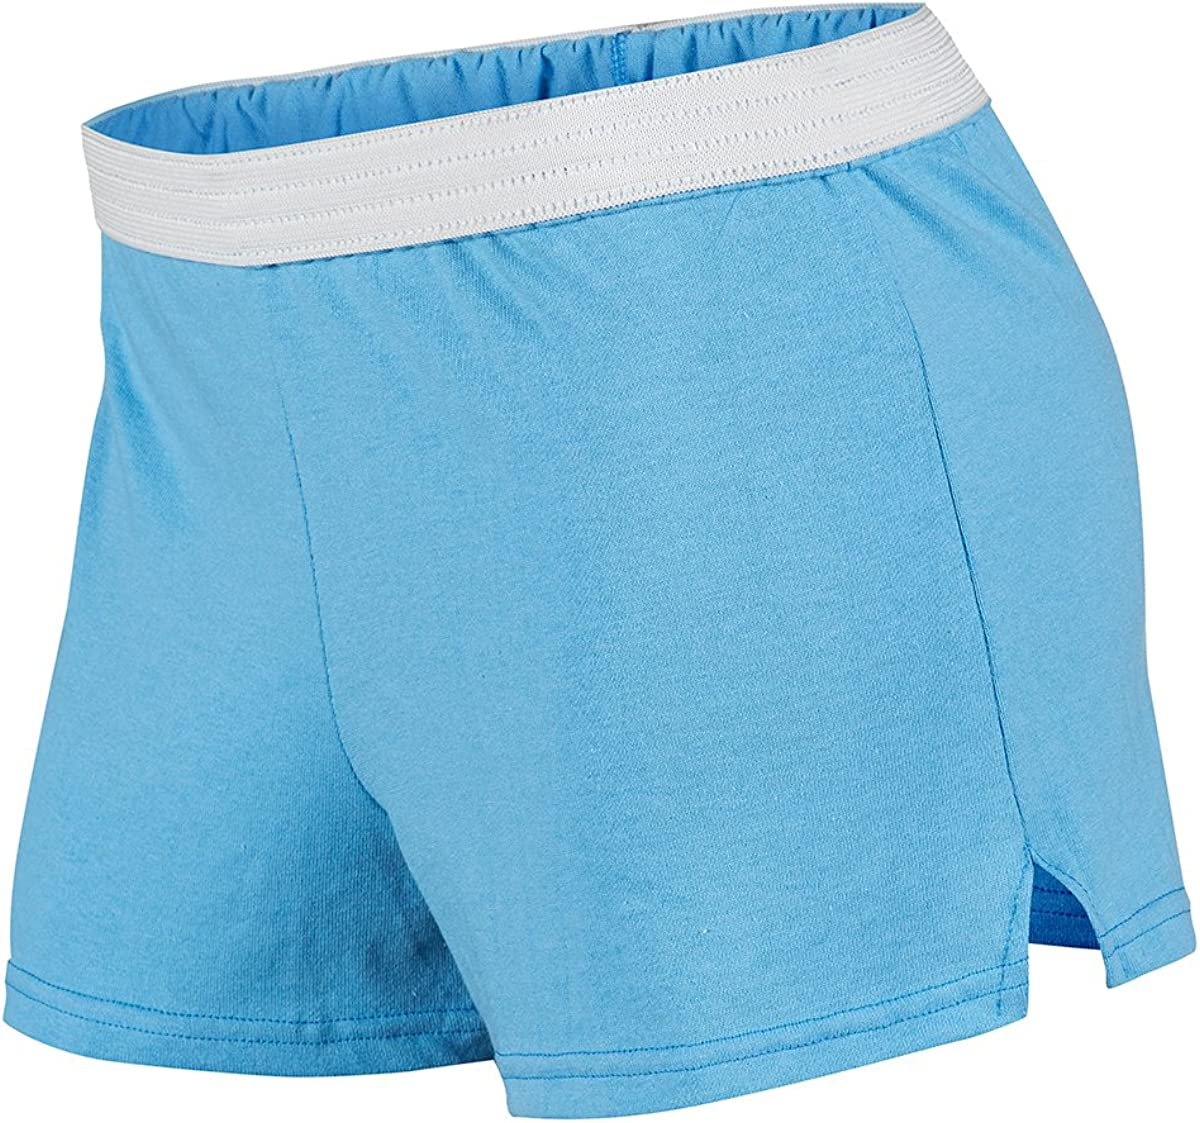 Soffe Womens Plus Size Authentic Cheer Short